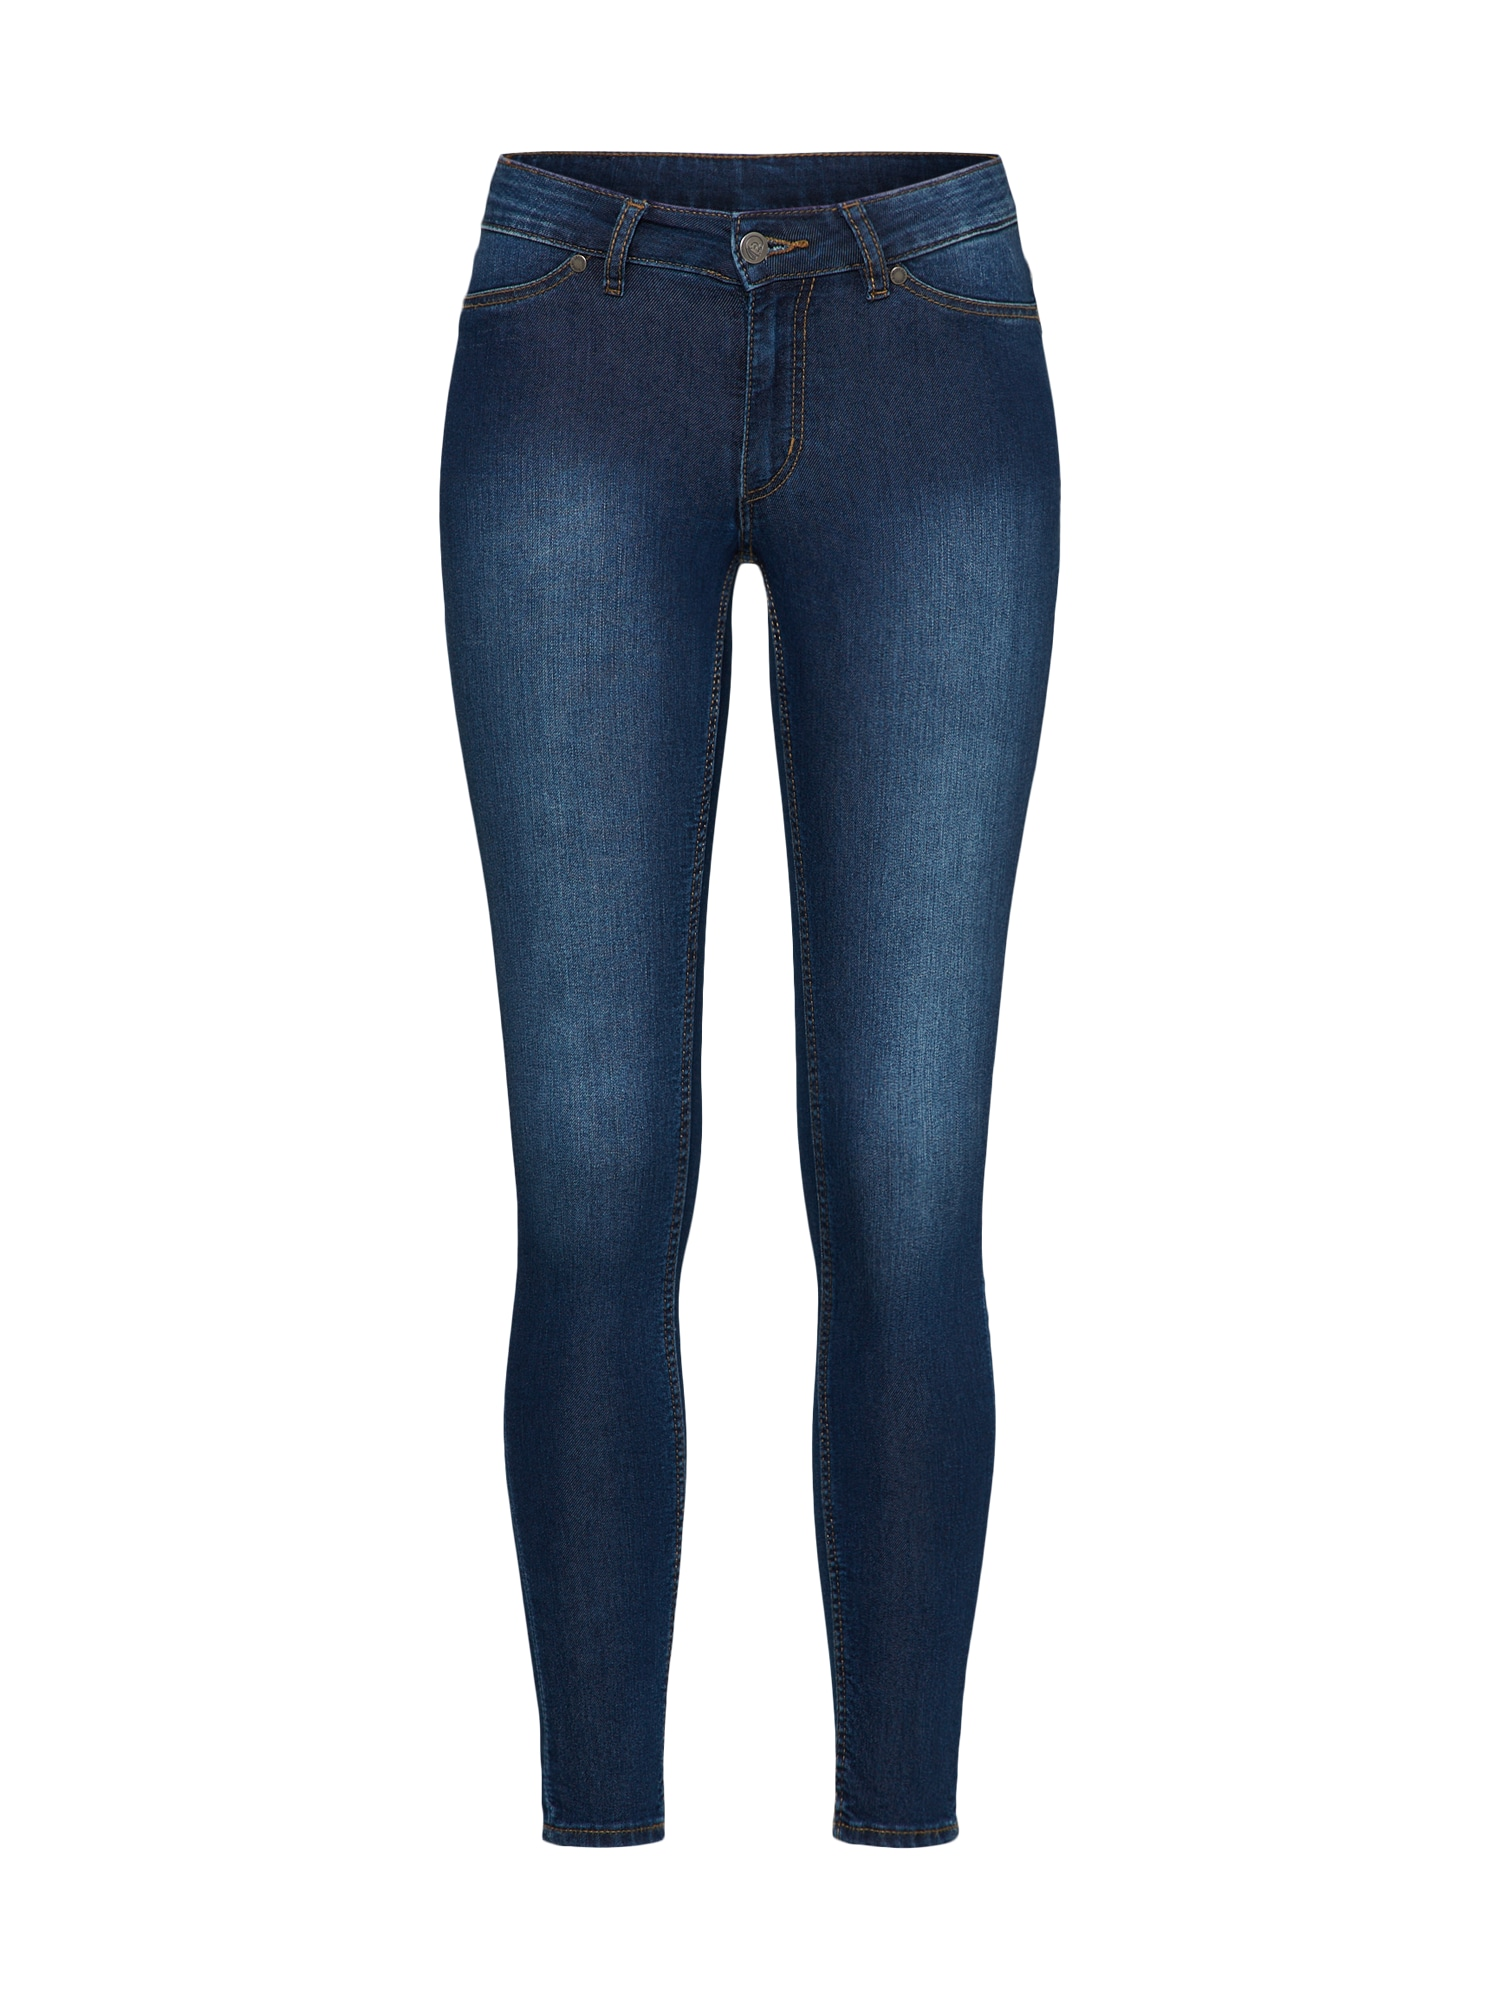 CHEAP MONDAY Dames Jeans blauw